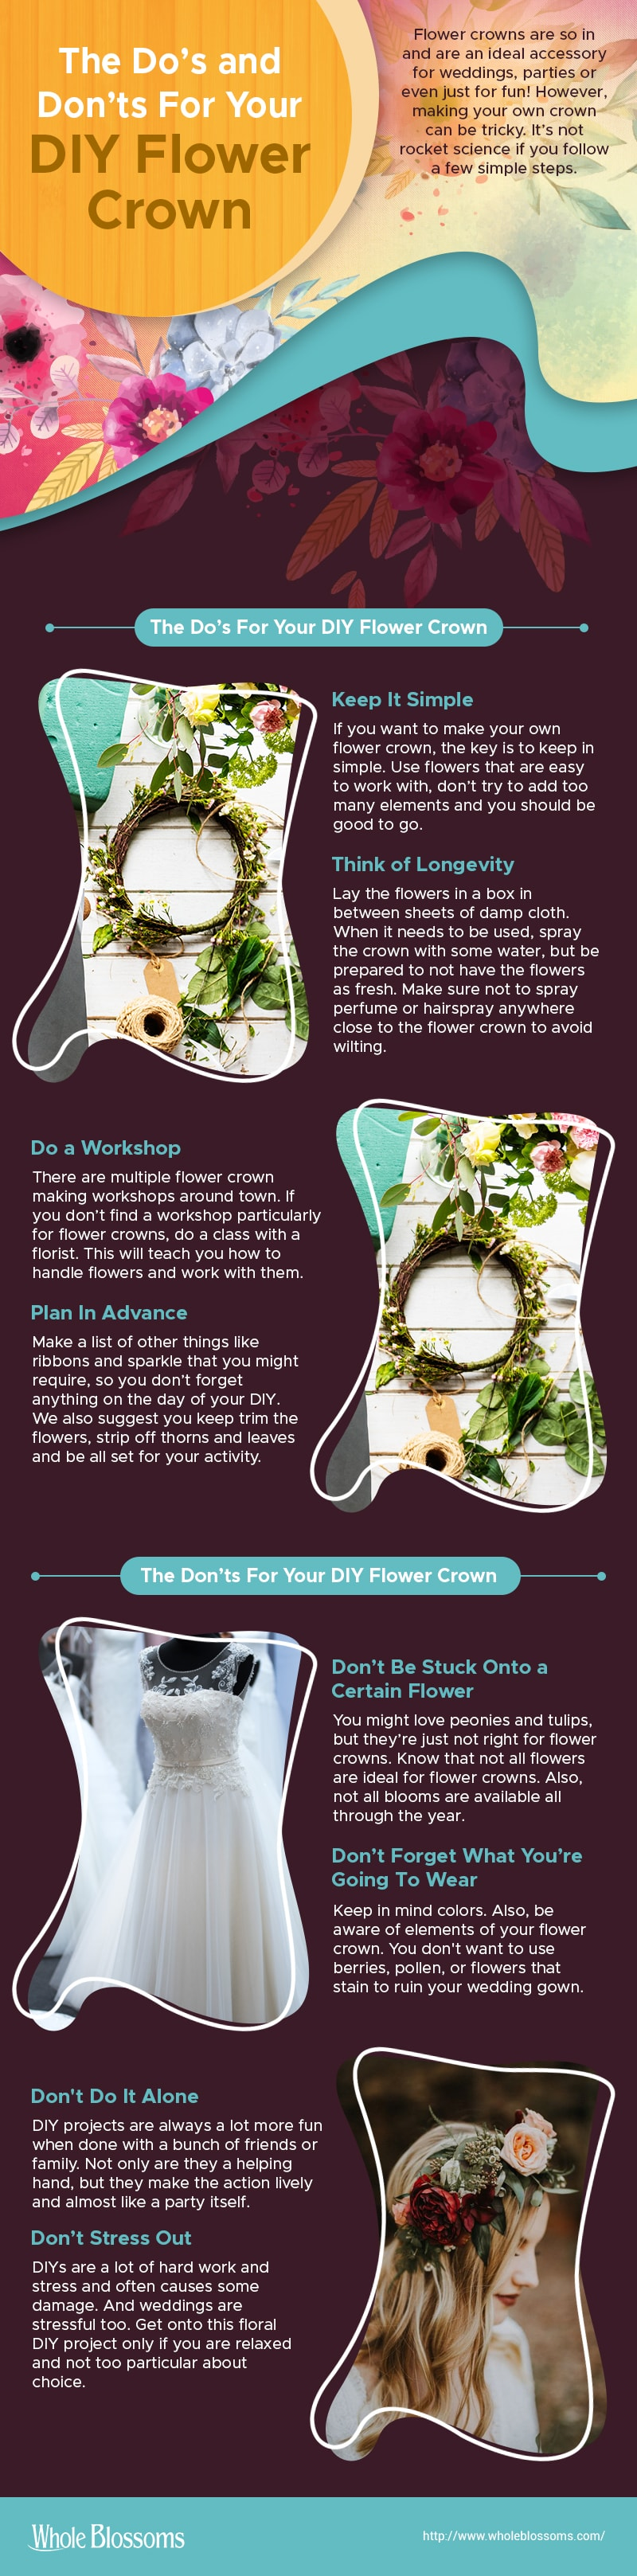 The Do's & Don'ts for Your DIY Flower Crown